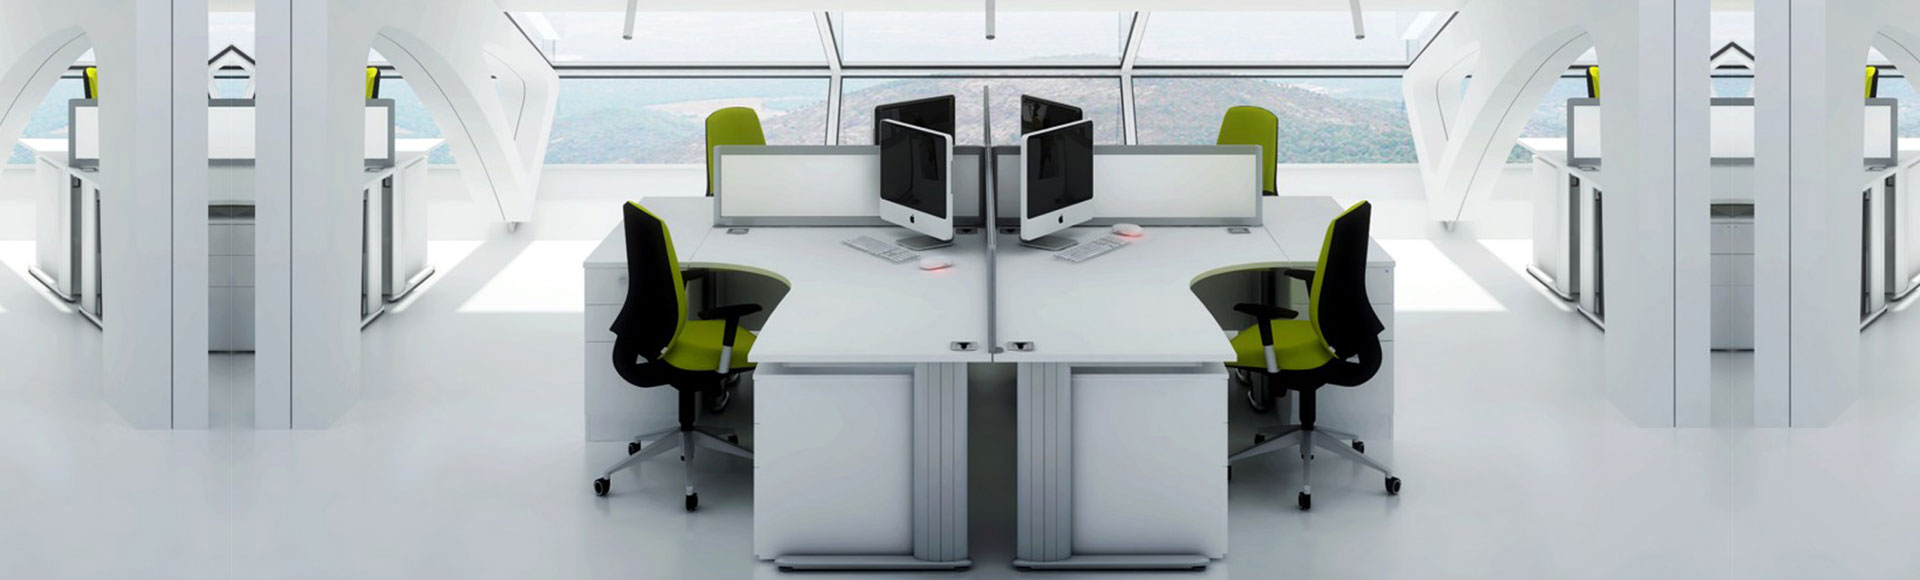 furniture manufacturers in chennai office chairs office tables